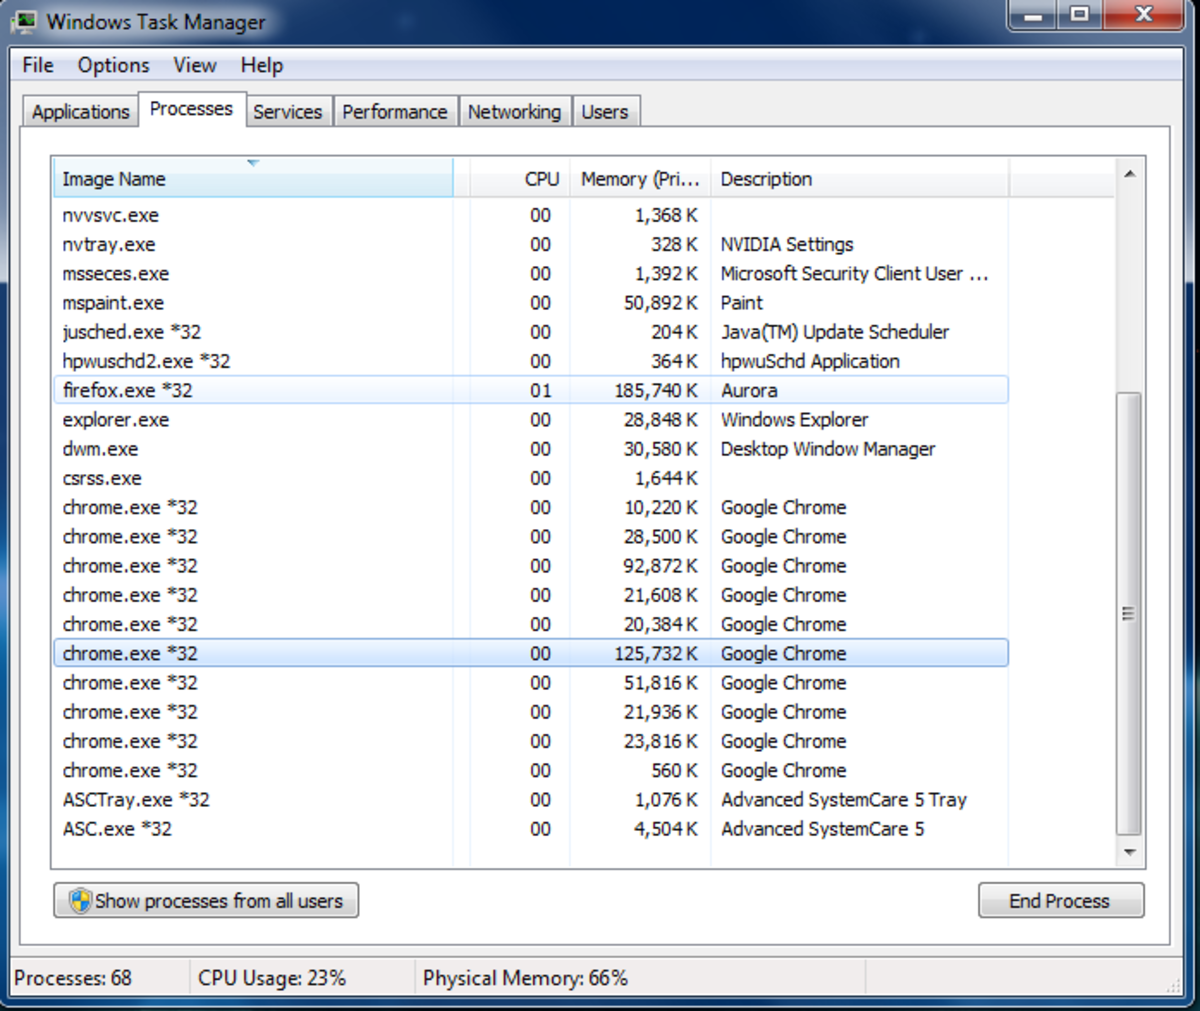 Screen Shot of Task Manager - Chrome Processes VS Firefox Processes when running same web pages/amount.